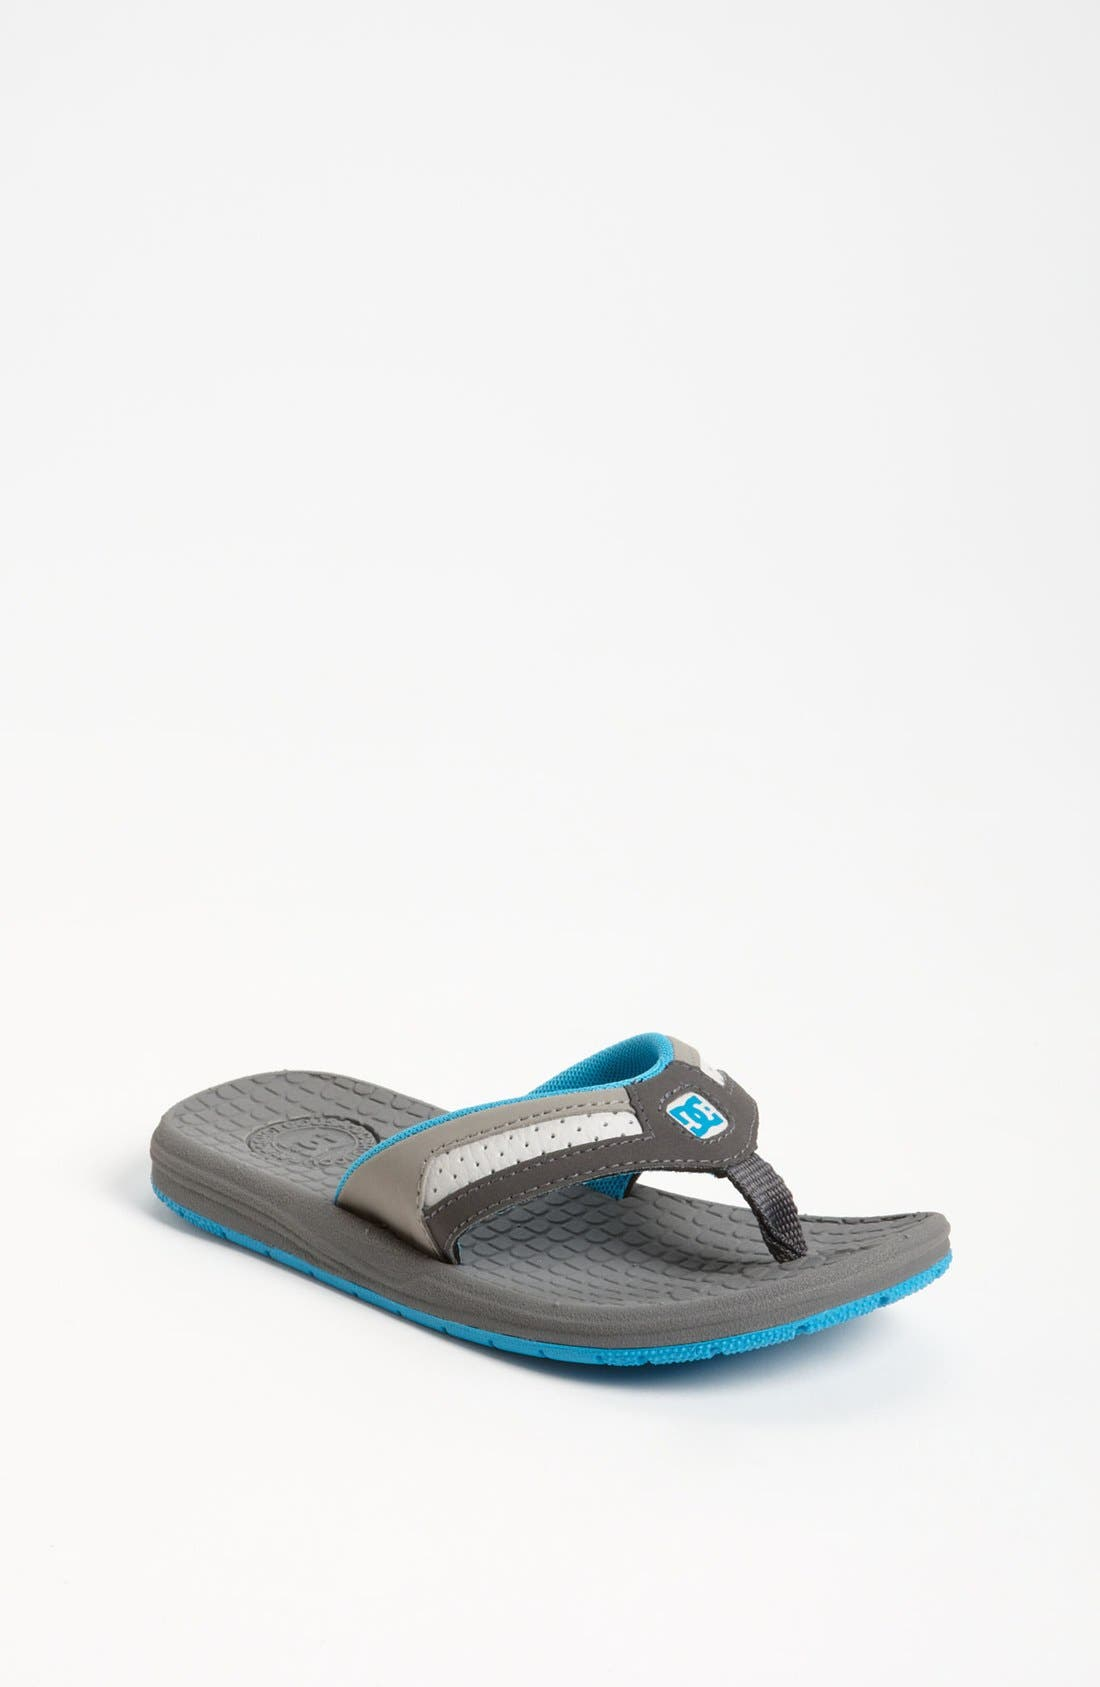 Alternate Image 1 Selected - DC Shoes 'Cabo' Flip Flop (Toddler, Little Kid & Big Kid)